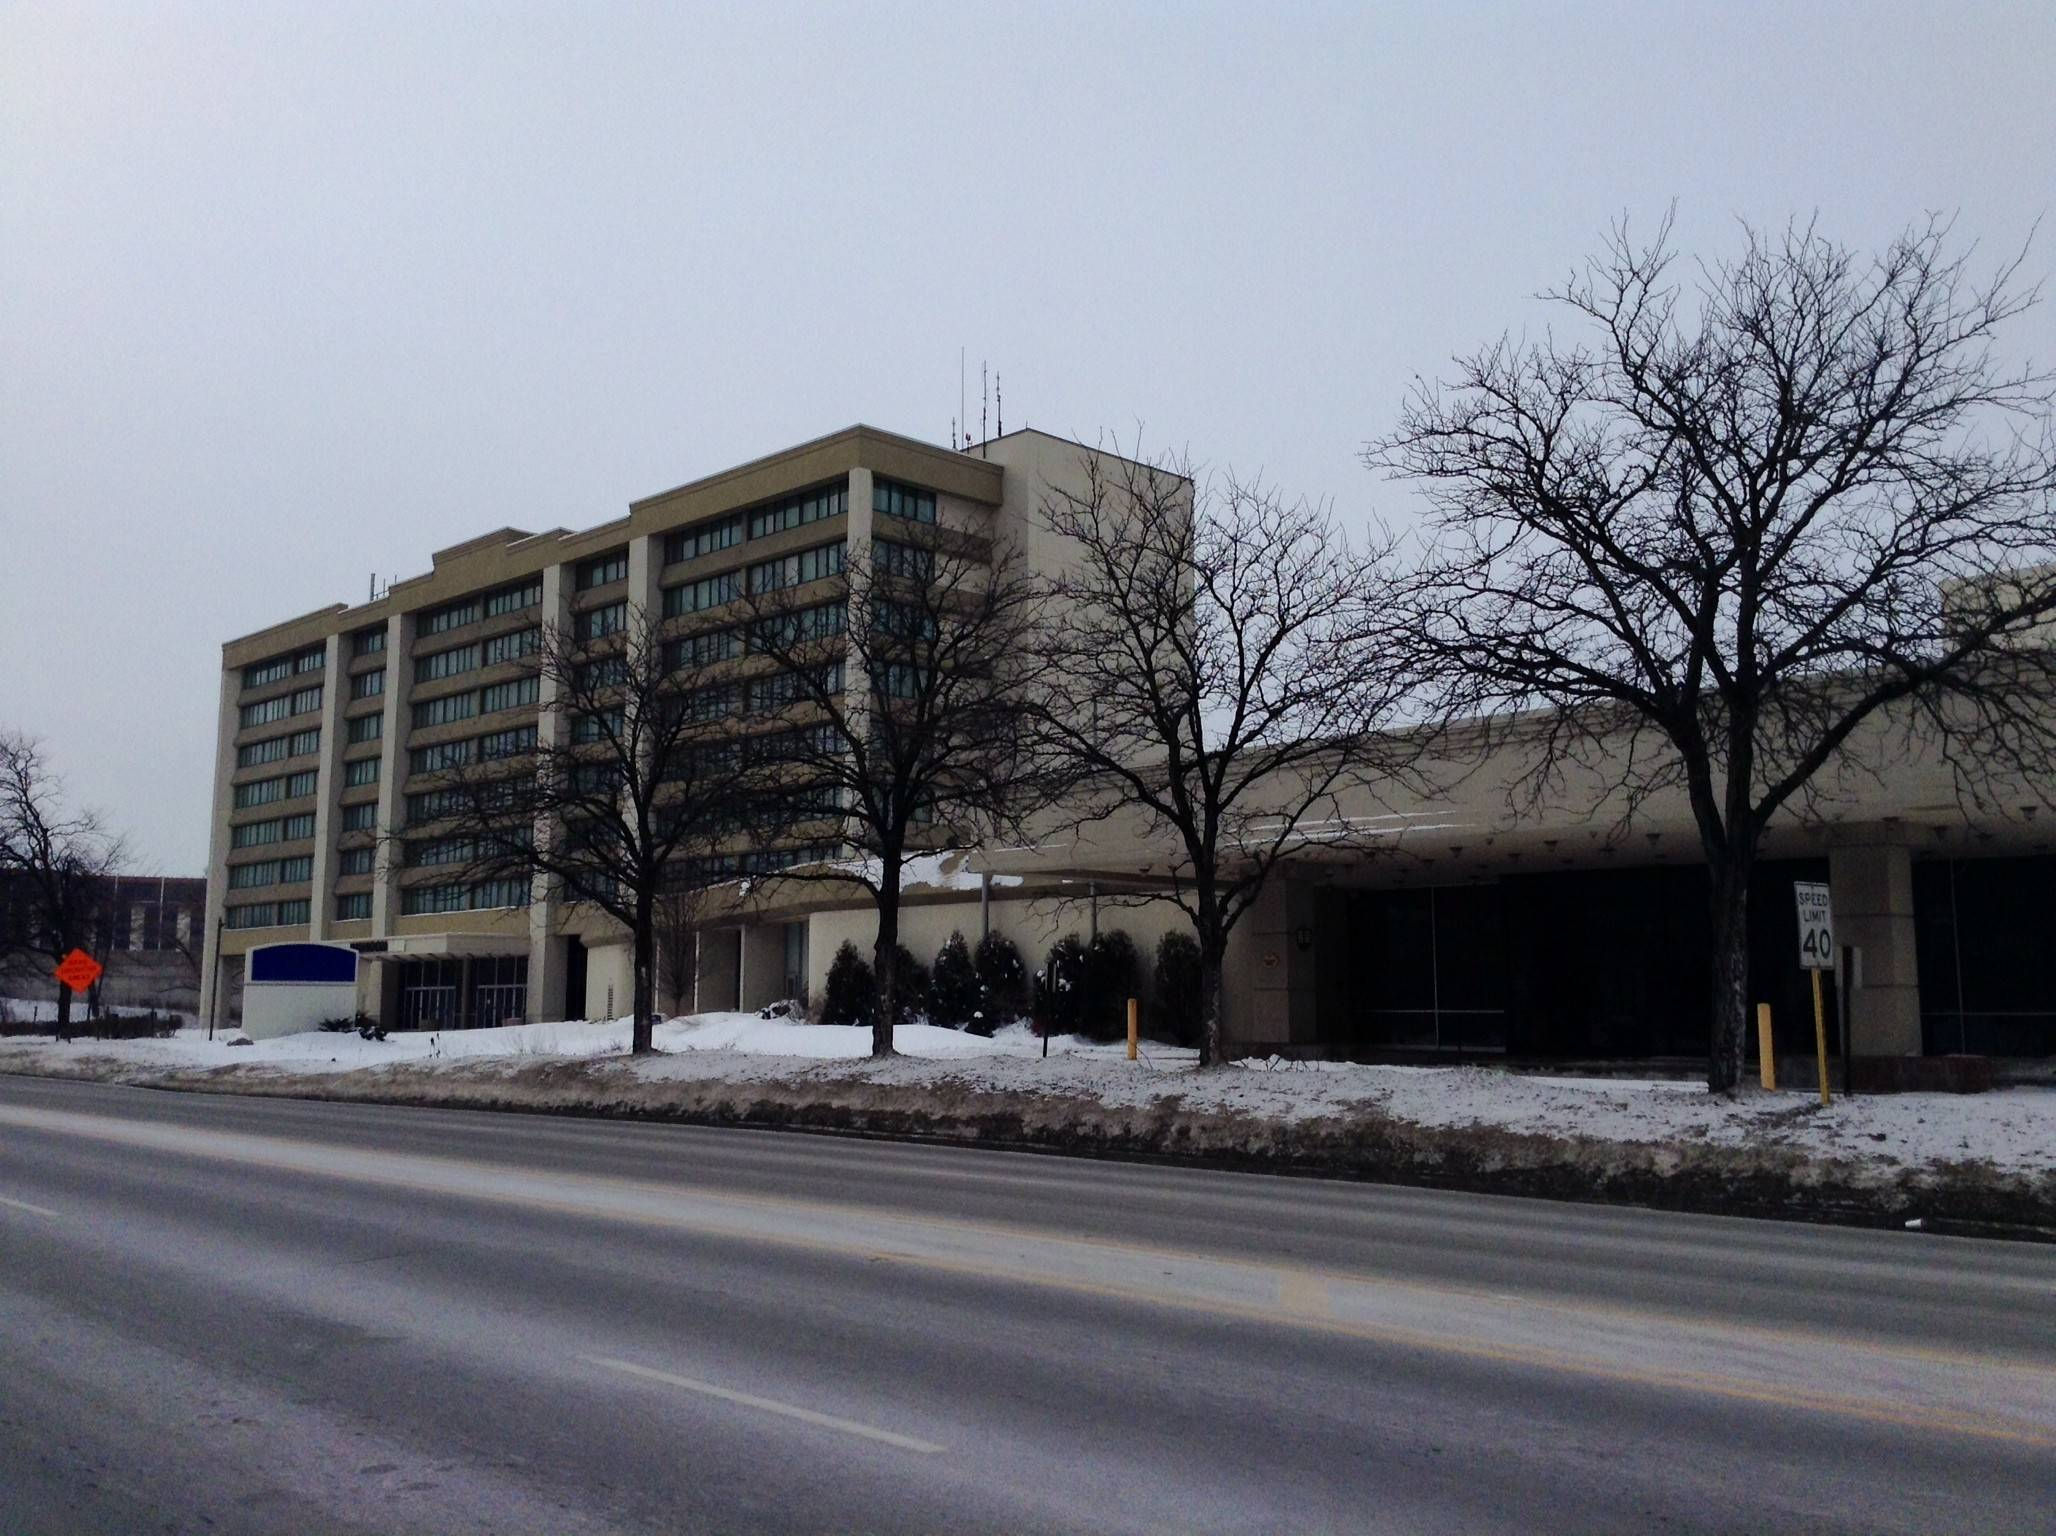 The owners of the former Wyndham O'Hare Hotel at 6810 N. Mannheim Road in Rosemont propose to convert it to two separate hotels, with a reopening planned for July.